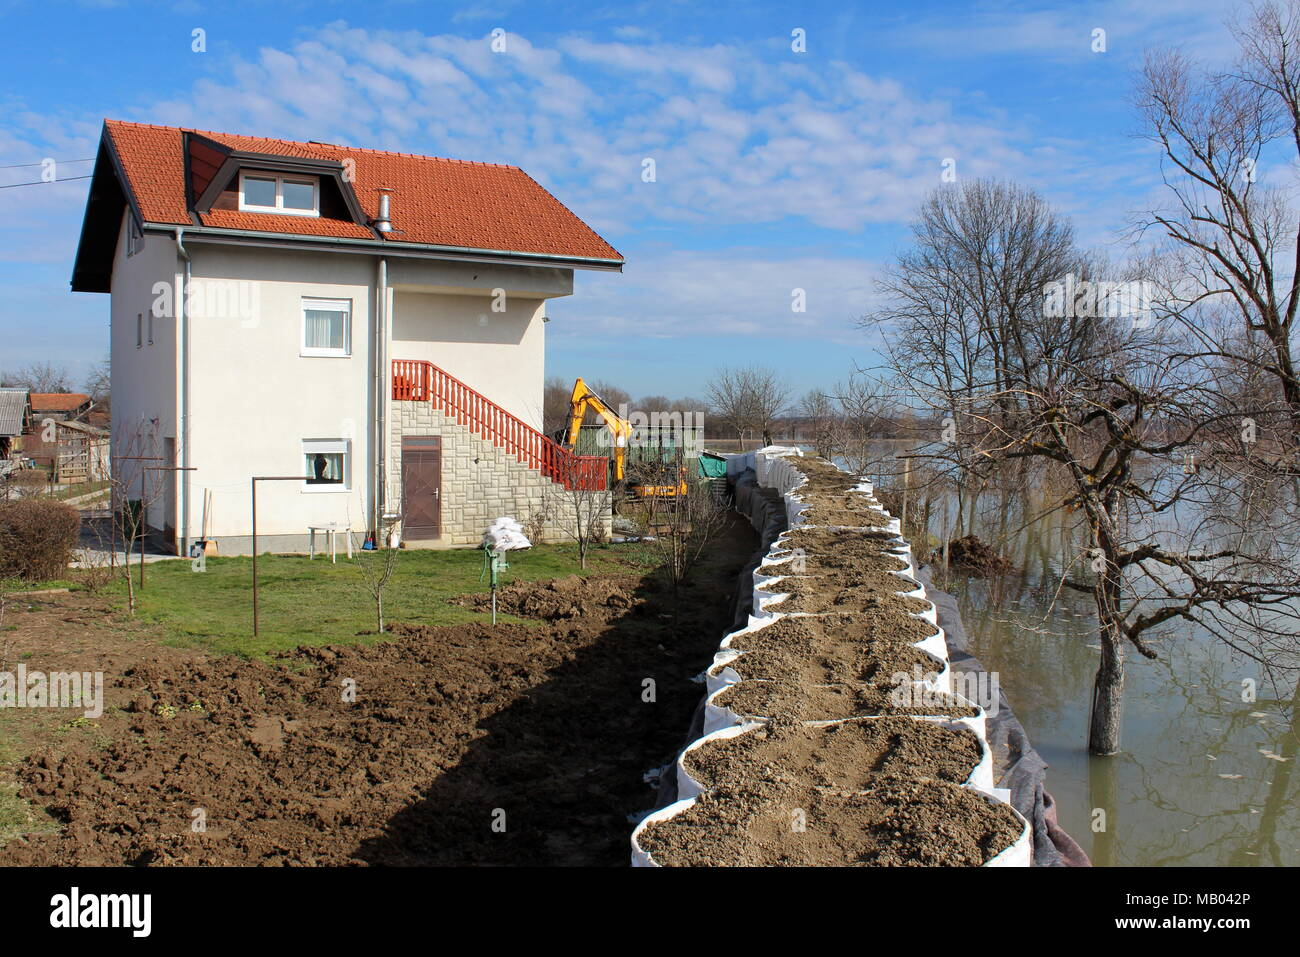 Suburban house protected with flood protection from rising river Stock Photo